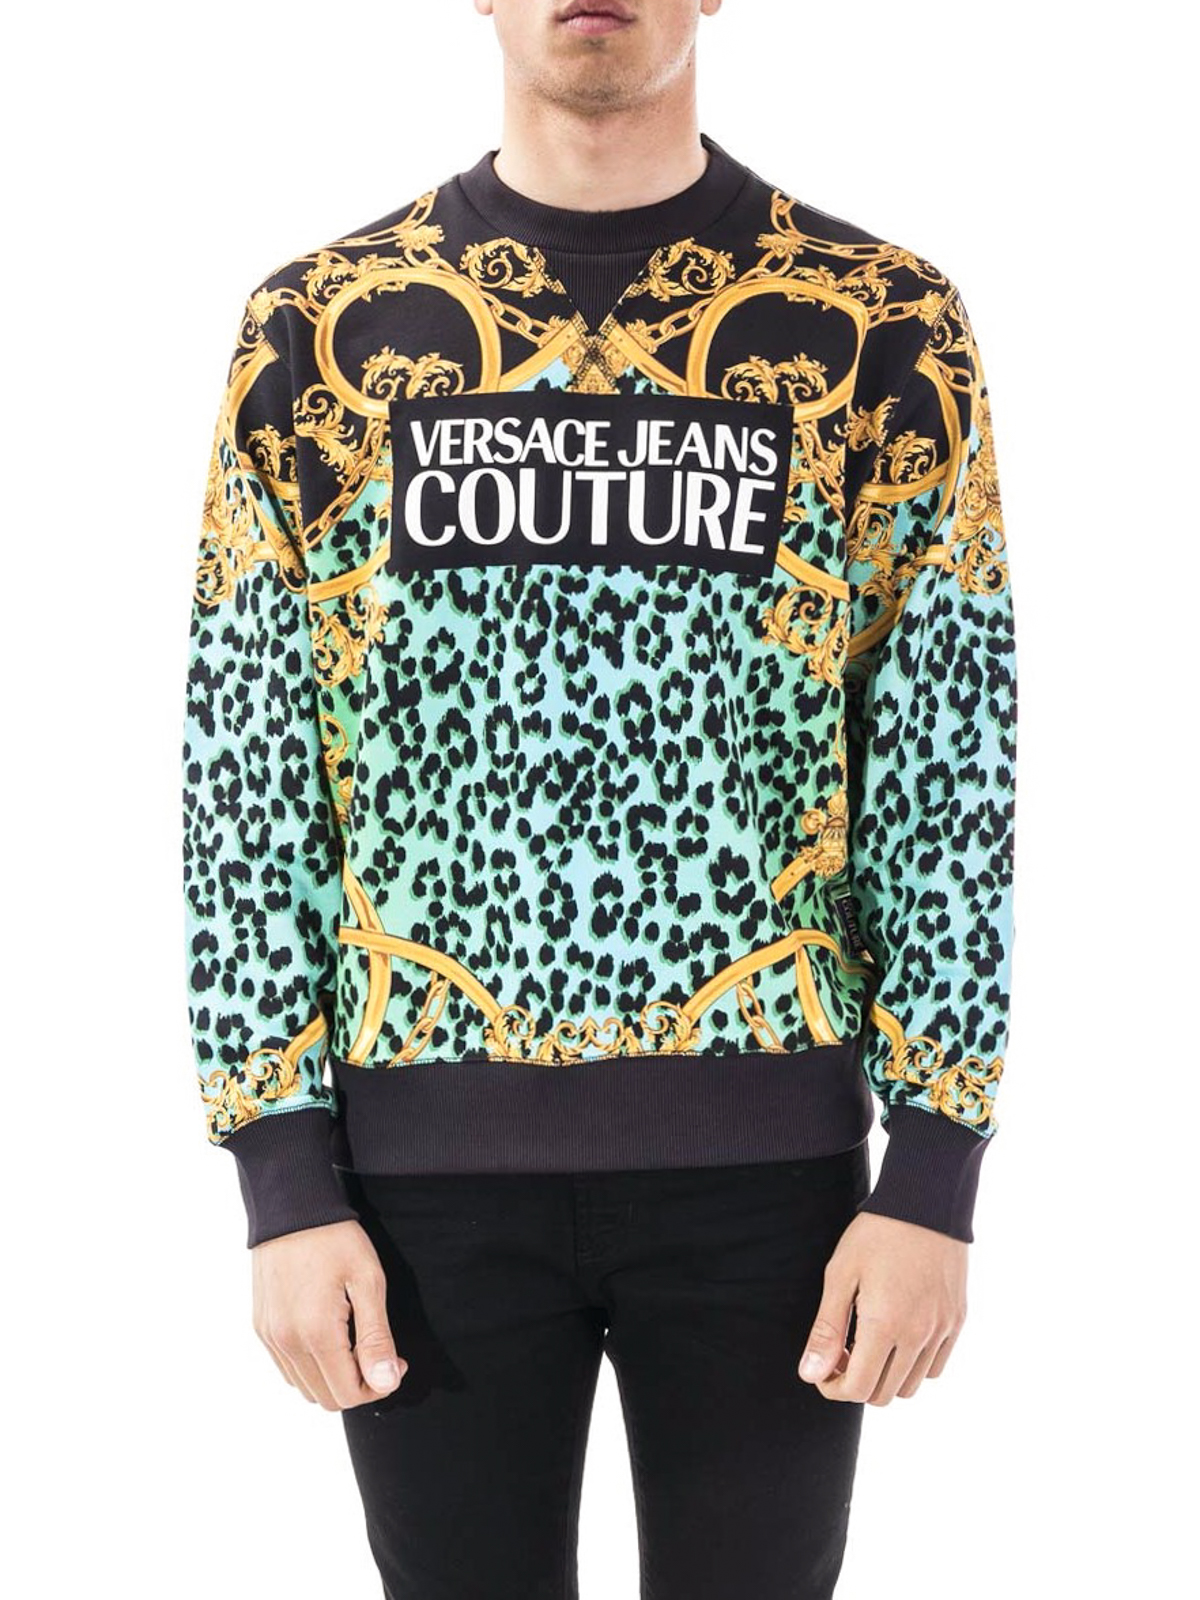 Versace Jeans Couture Barocco Stampa Felpa